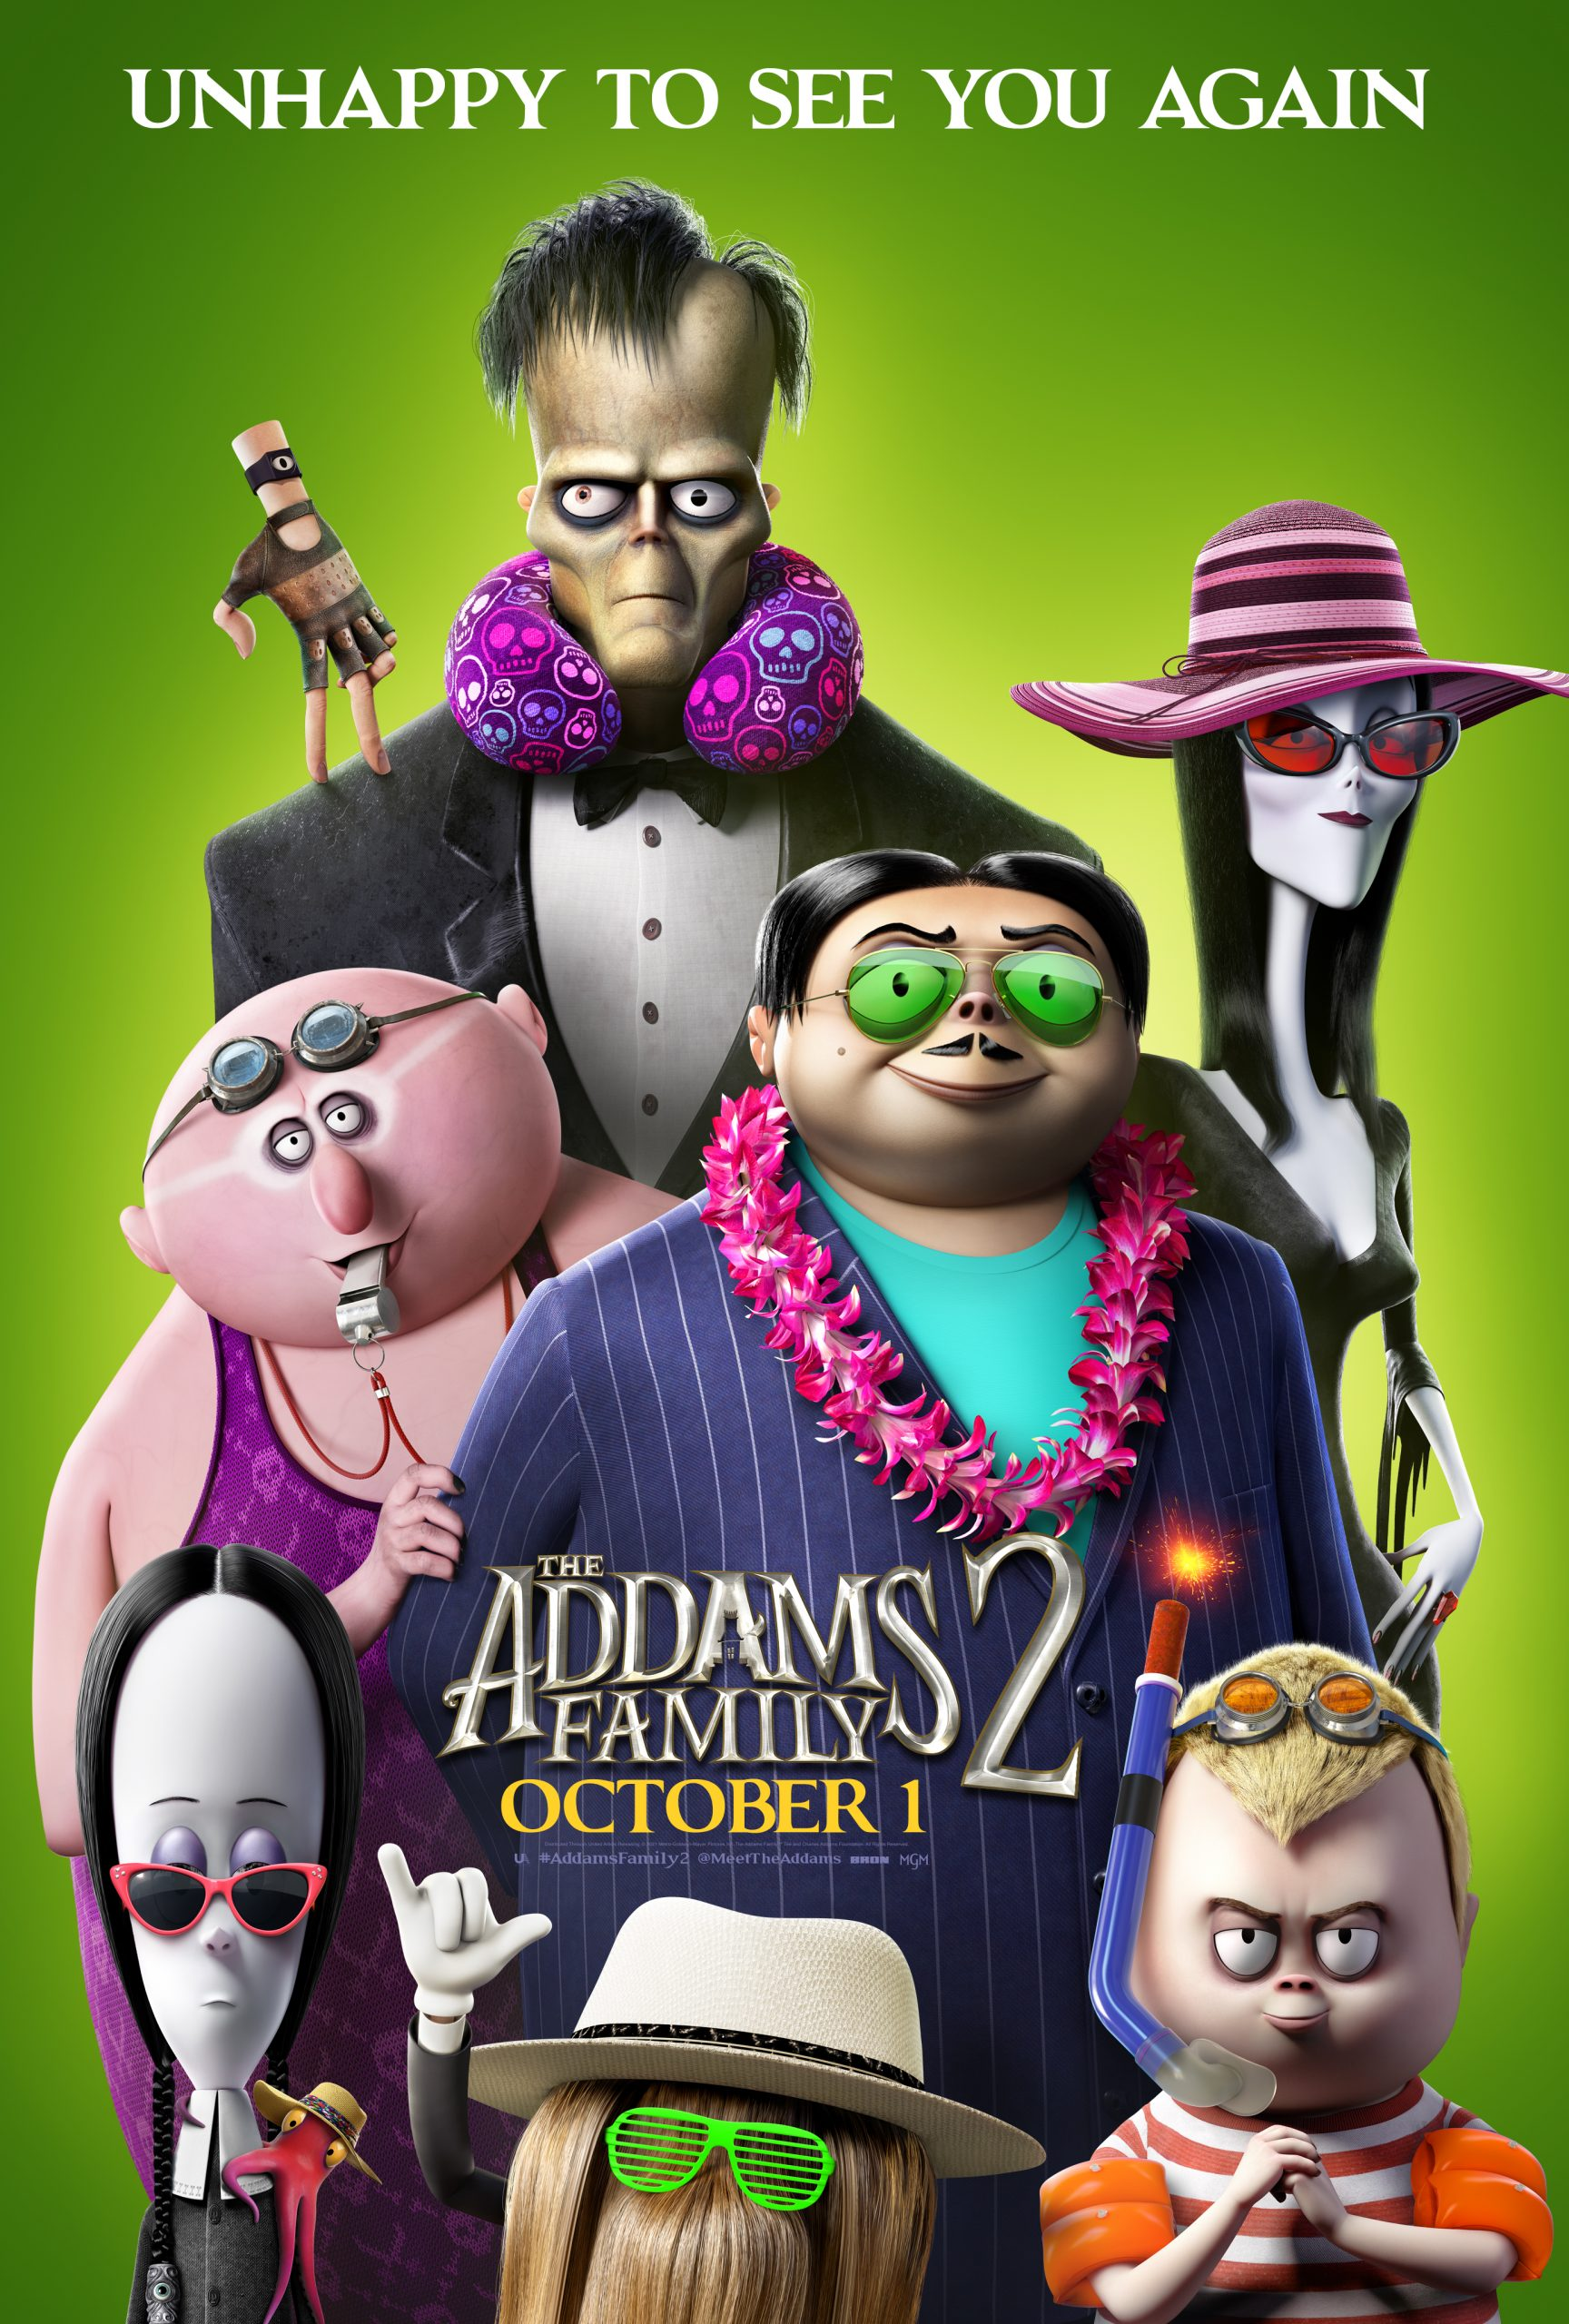 New Movie: The Addams Family 2 Starring Charlize Theron, Snoop Dogg